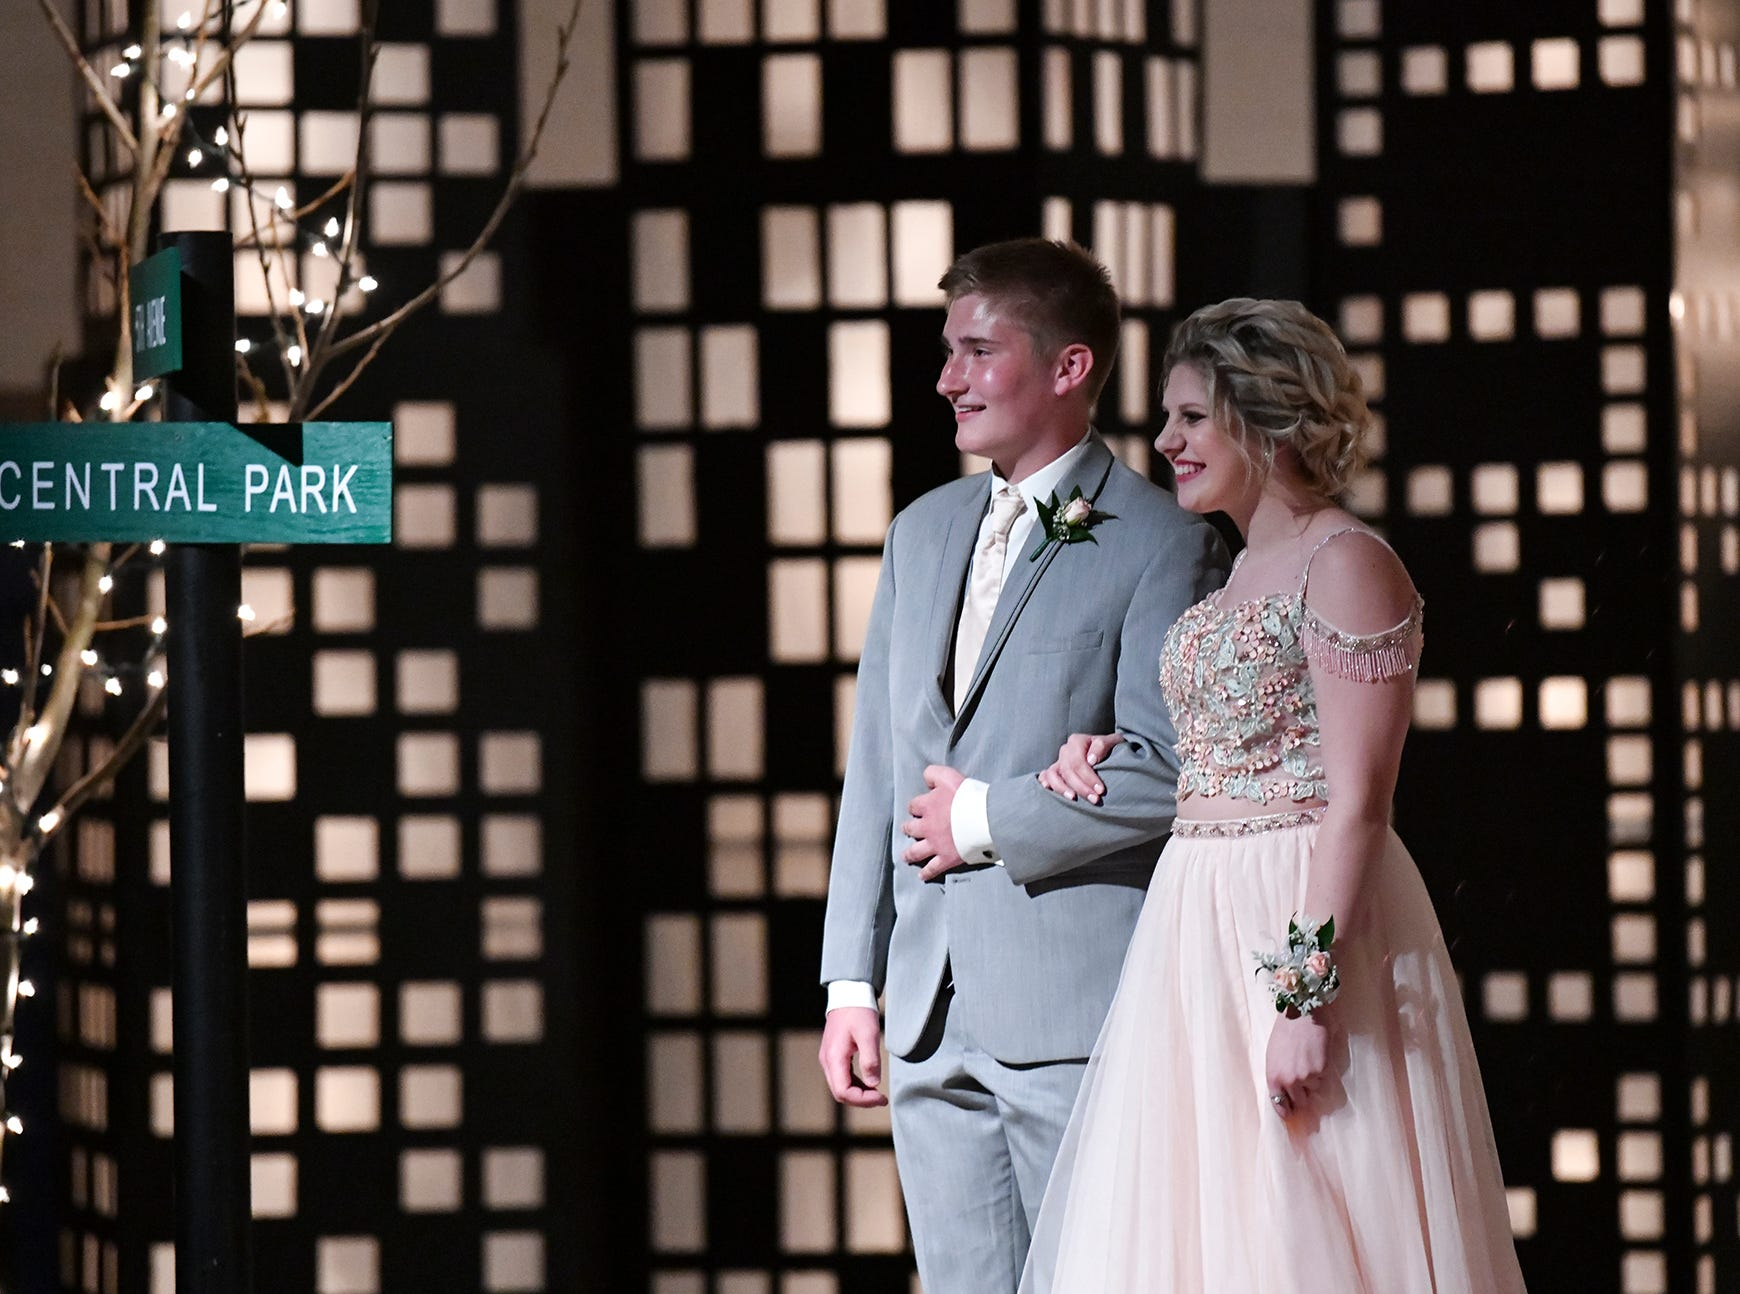 Couples smile against a city background while walking down the prom grand march route Saturday, April 27, at Foley High School.